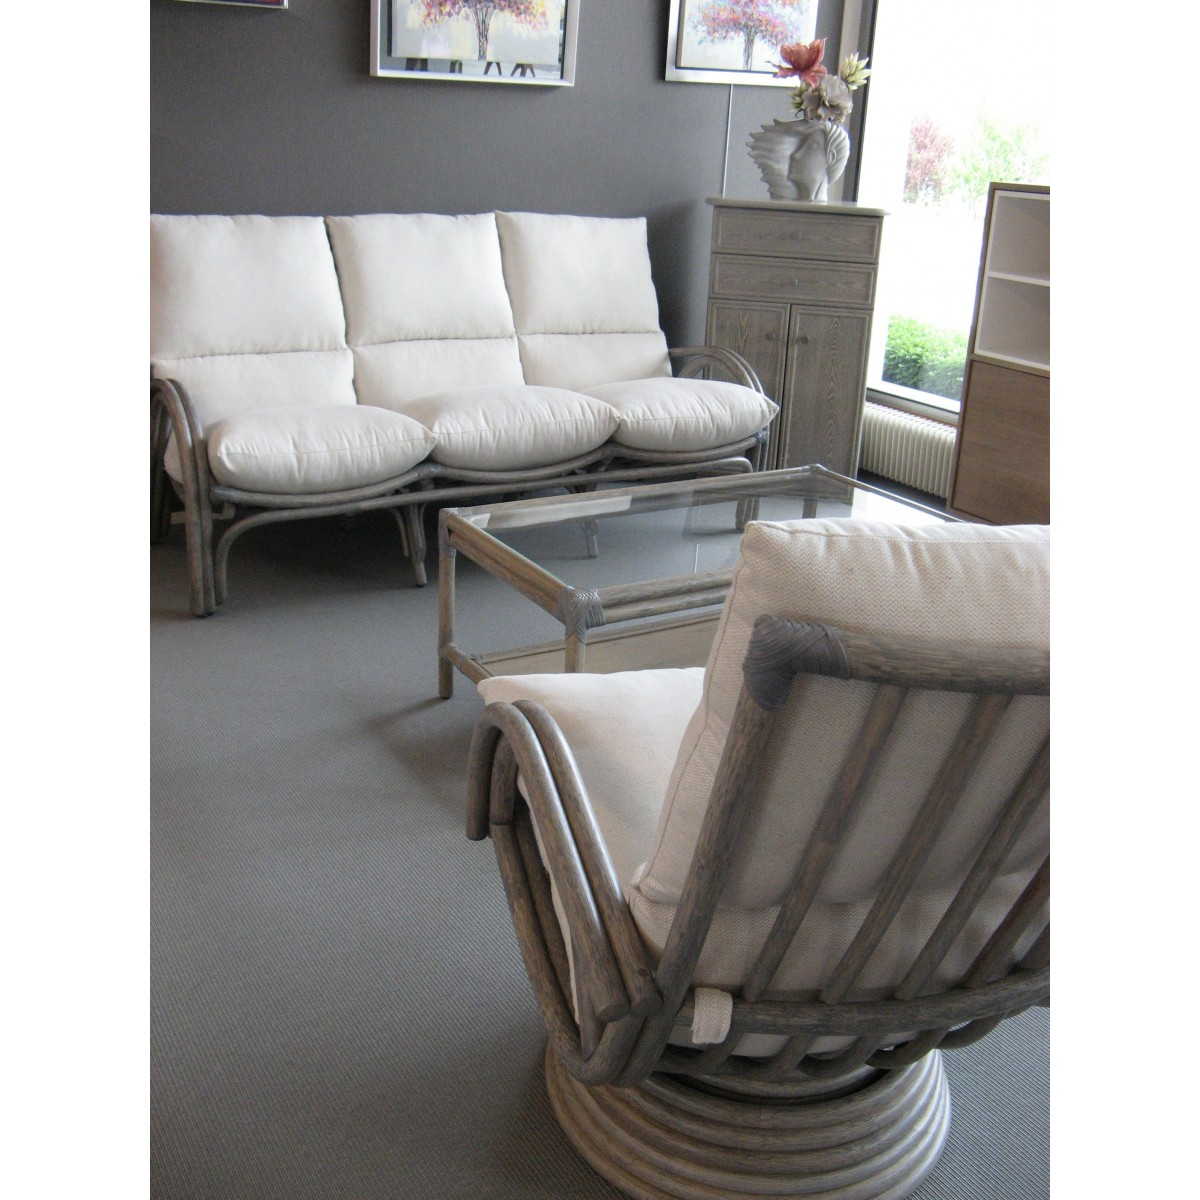 Salon 3 Places 2 Fauteuils Salon Leeds Gris